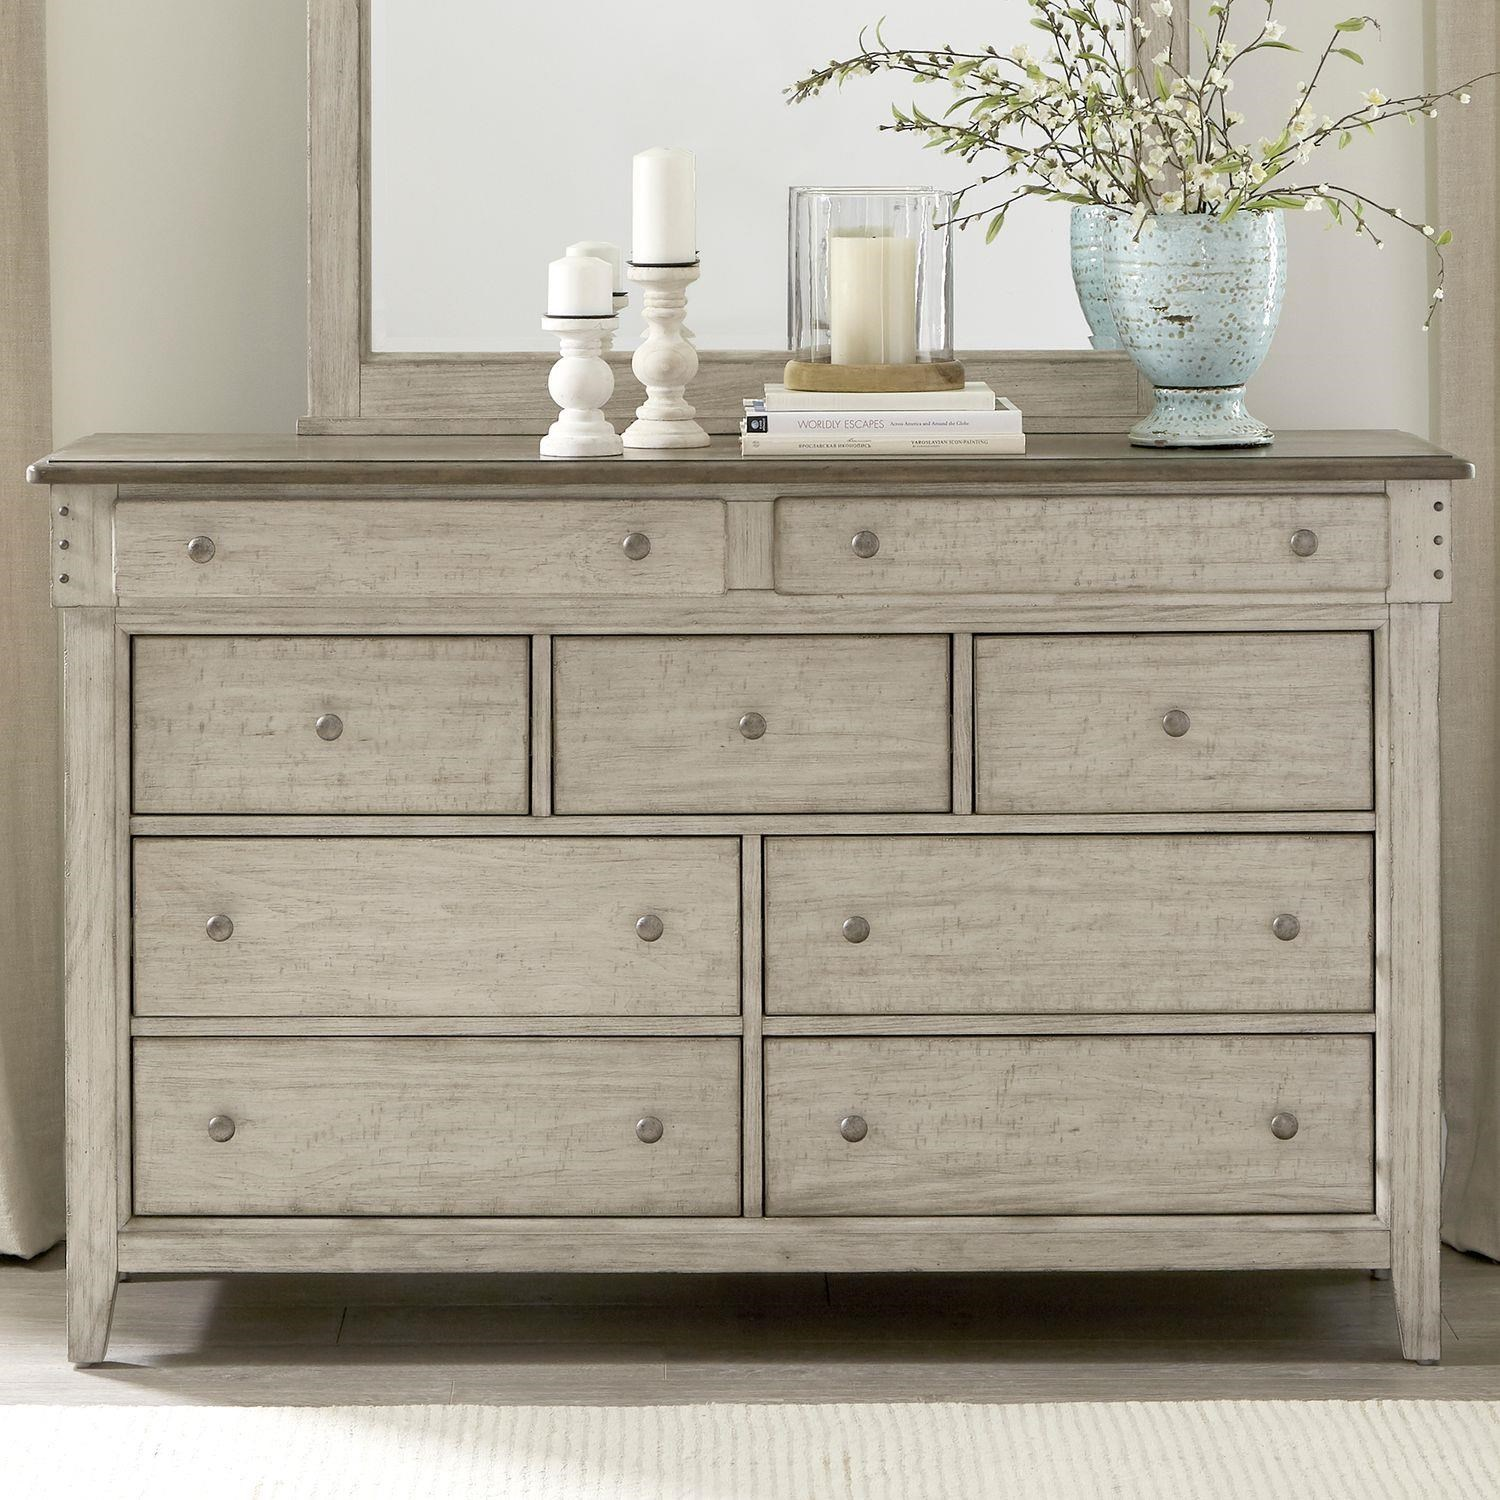 Ivy Hollow 9 Drawer Dresser by Liberty Furniture at Johnny Janosik